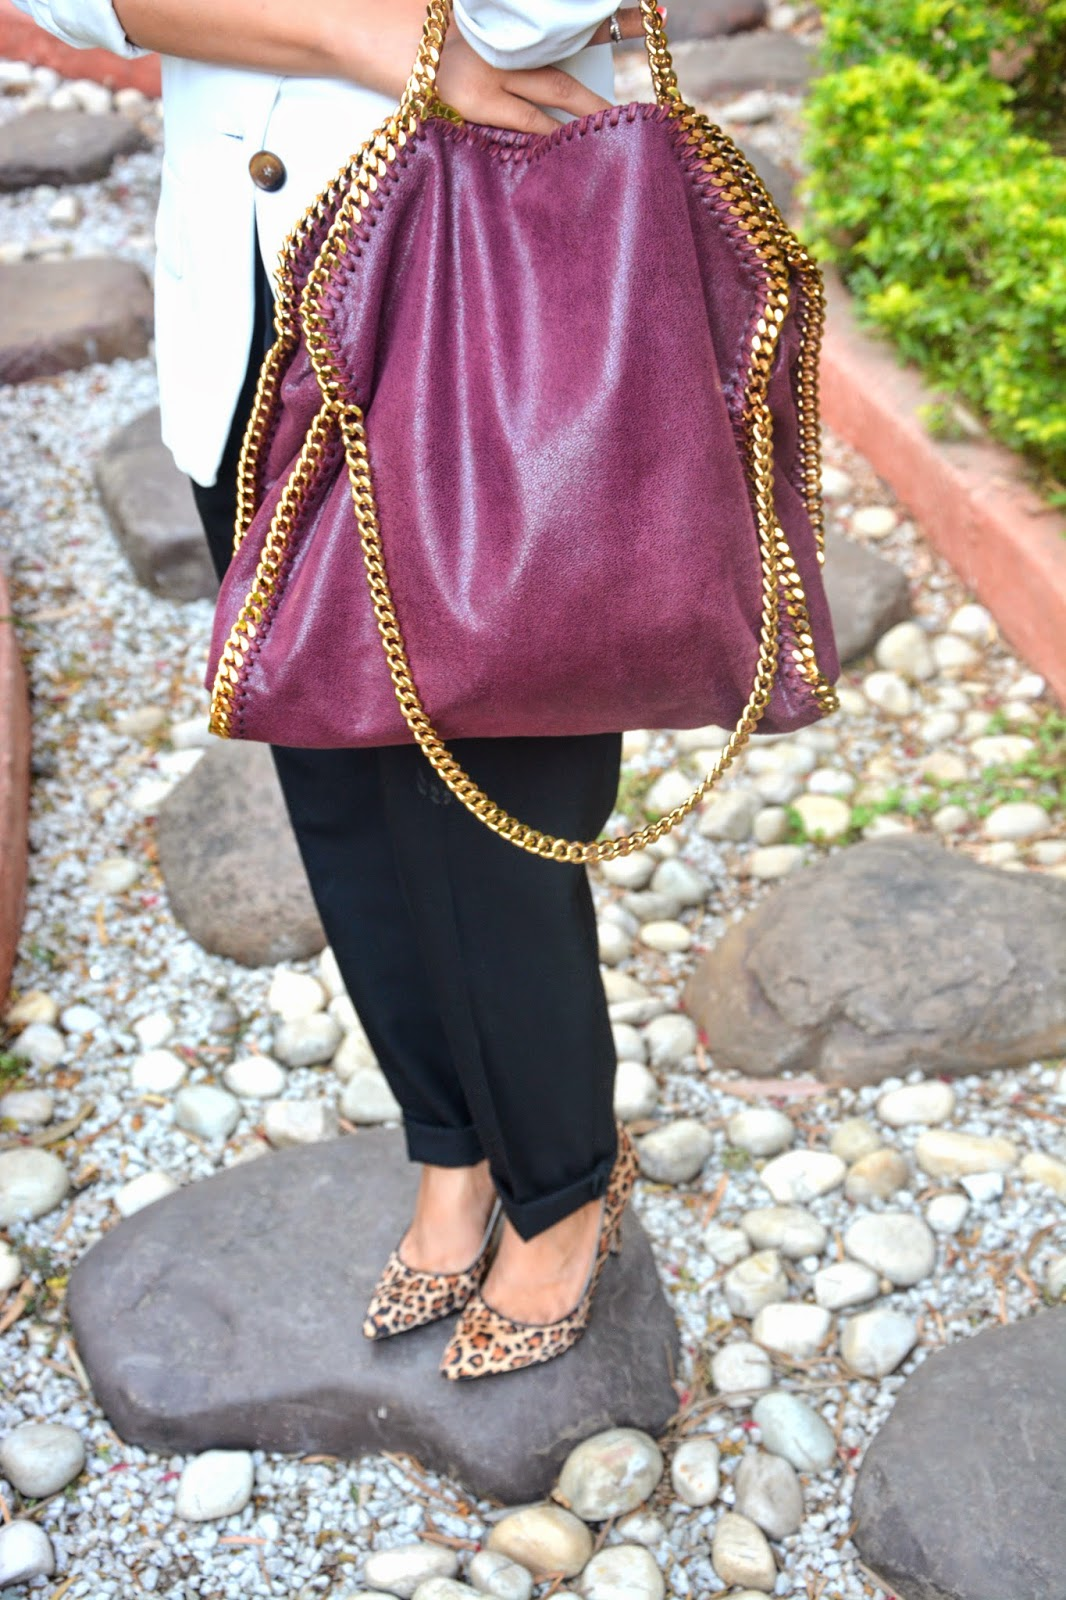 Stella McCartney Plum Falabella Bag and Leopard Heels